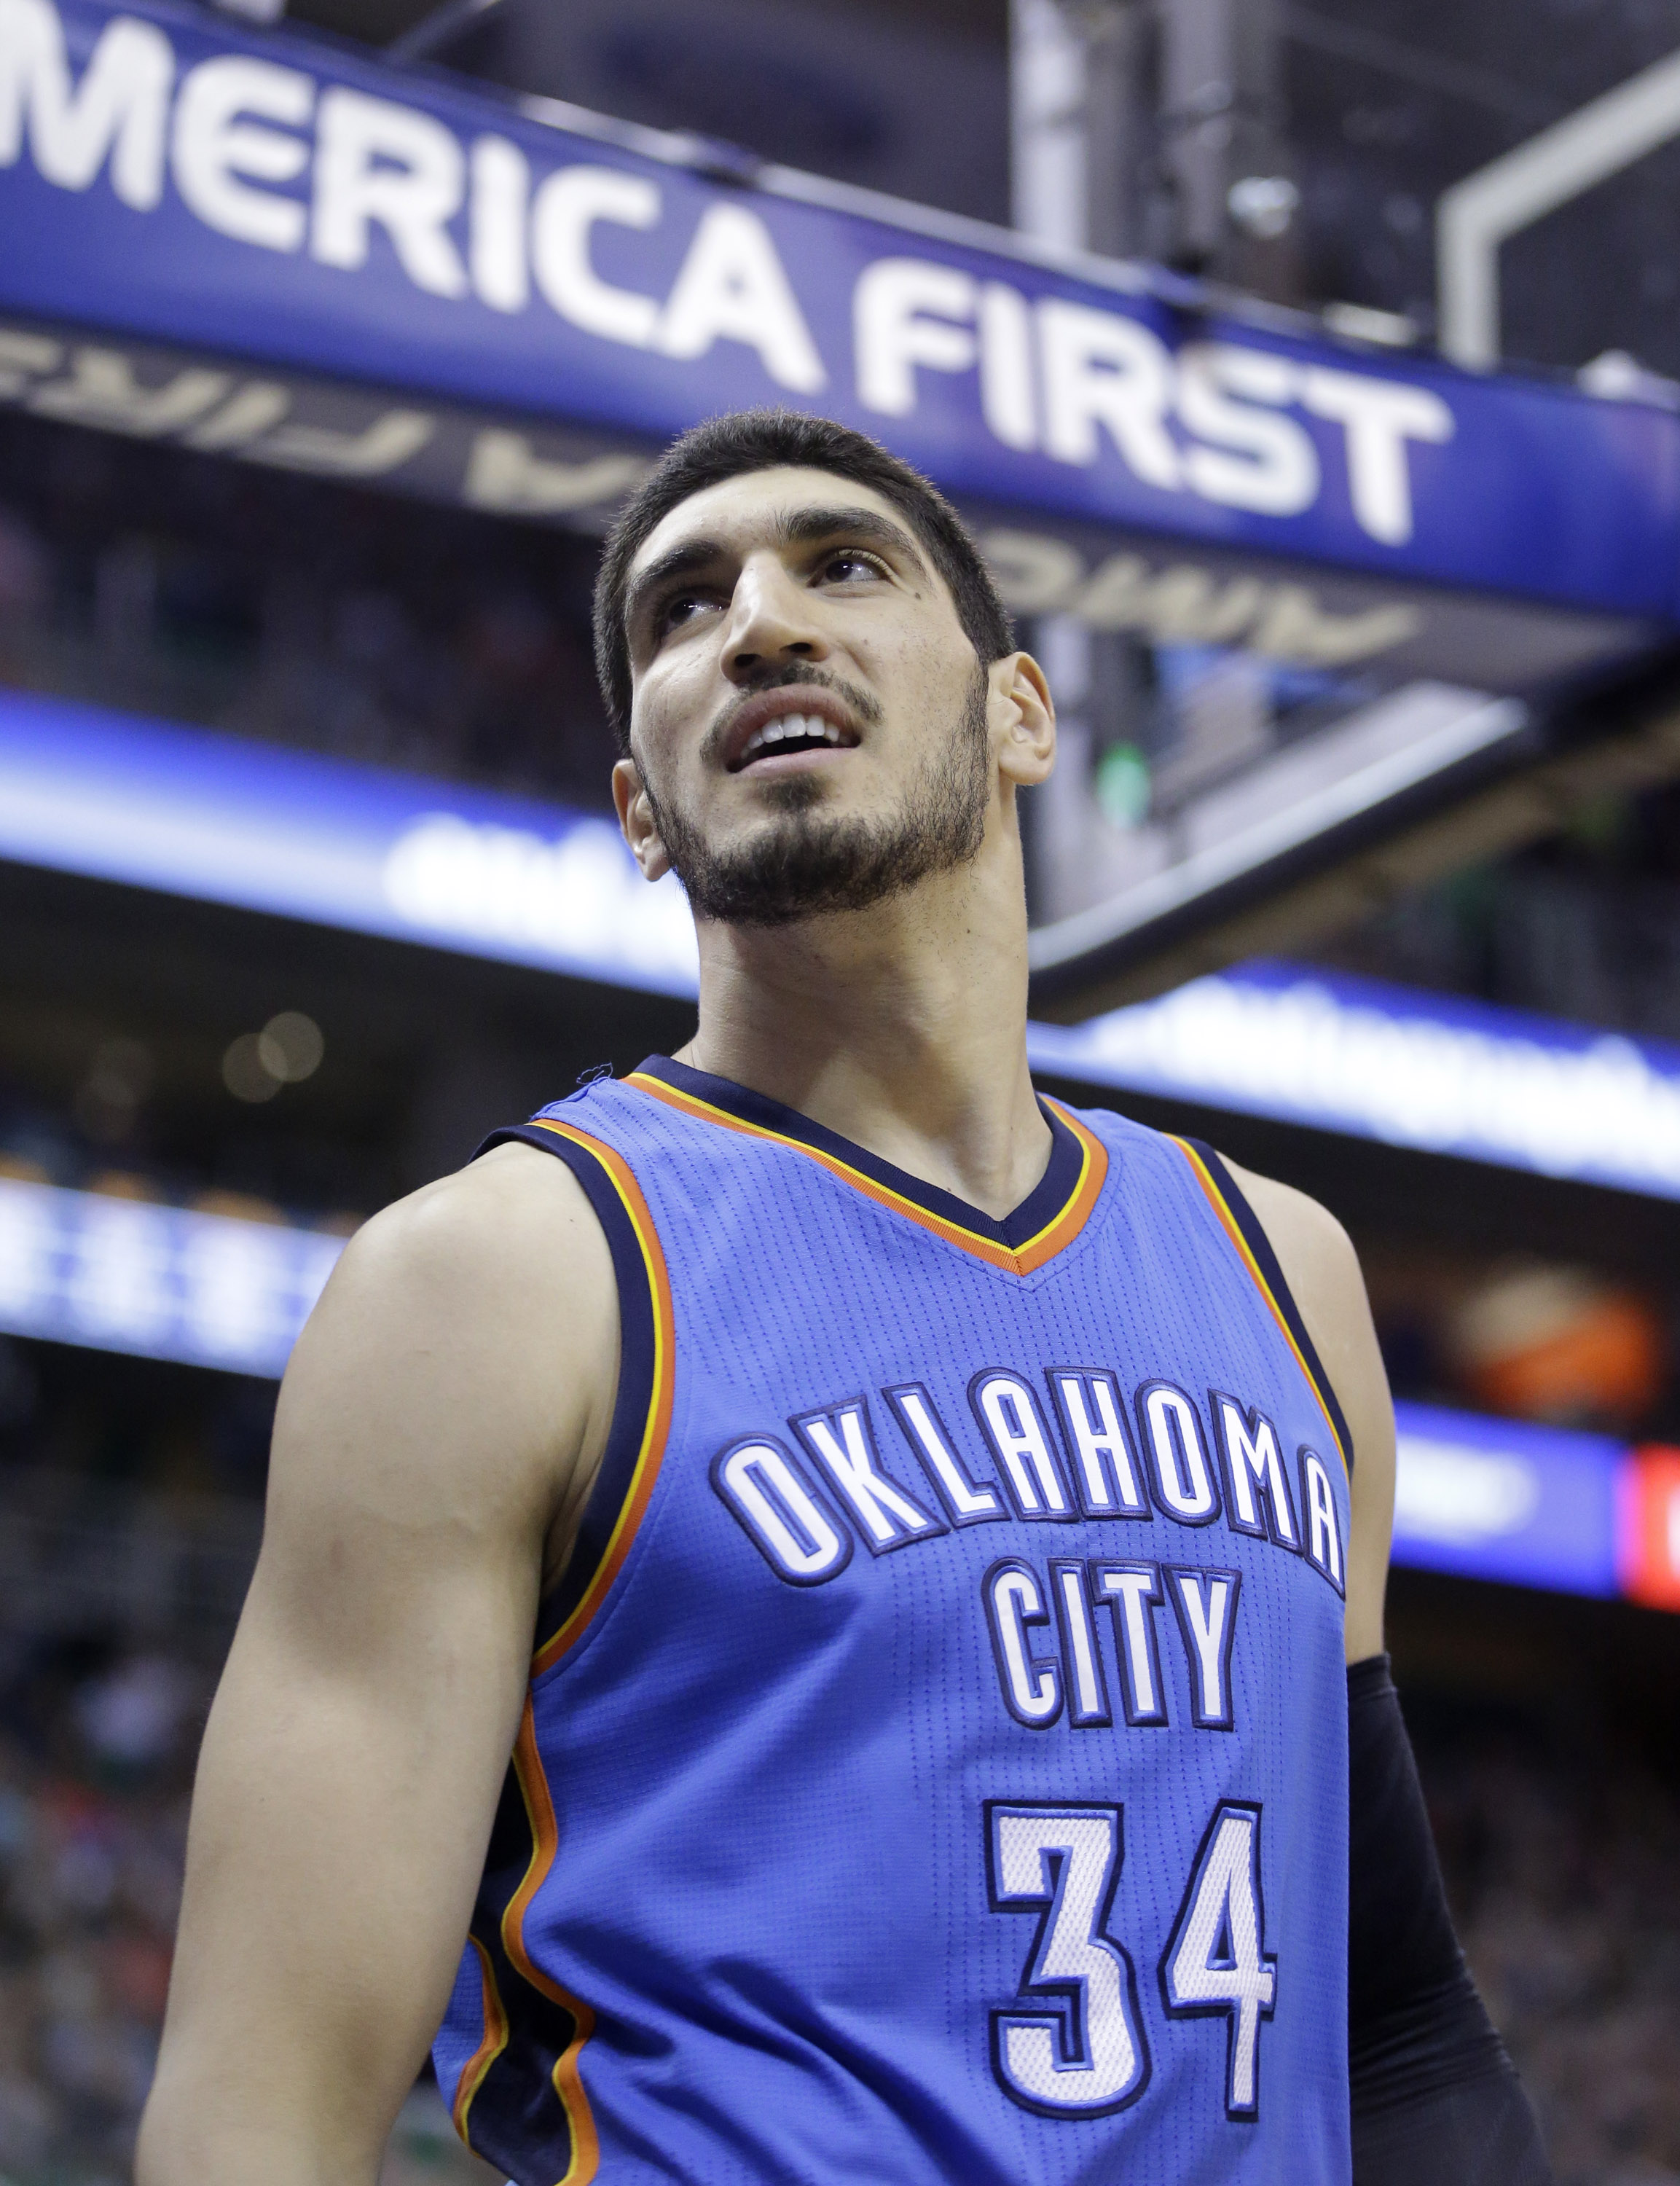 FILE - In this March 28, 2015, file photo, Oklahoma City Thunder center Enes Kanter (34) looks on in the second quarter of an NBA basketball game against the Utah Jazz, in Salt Lake City. Muslim athletes have responded over the past week after Donald Trum